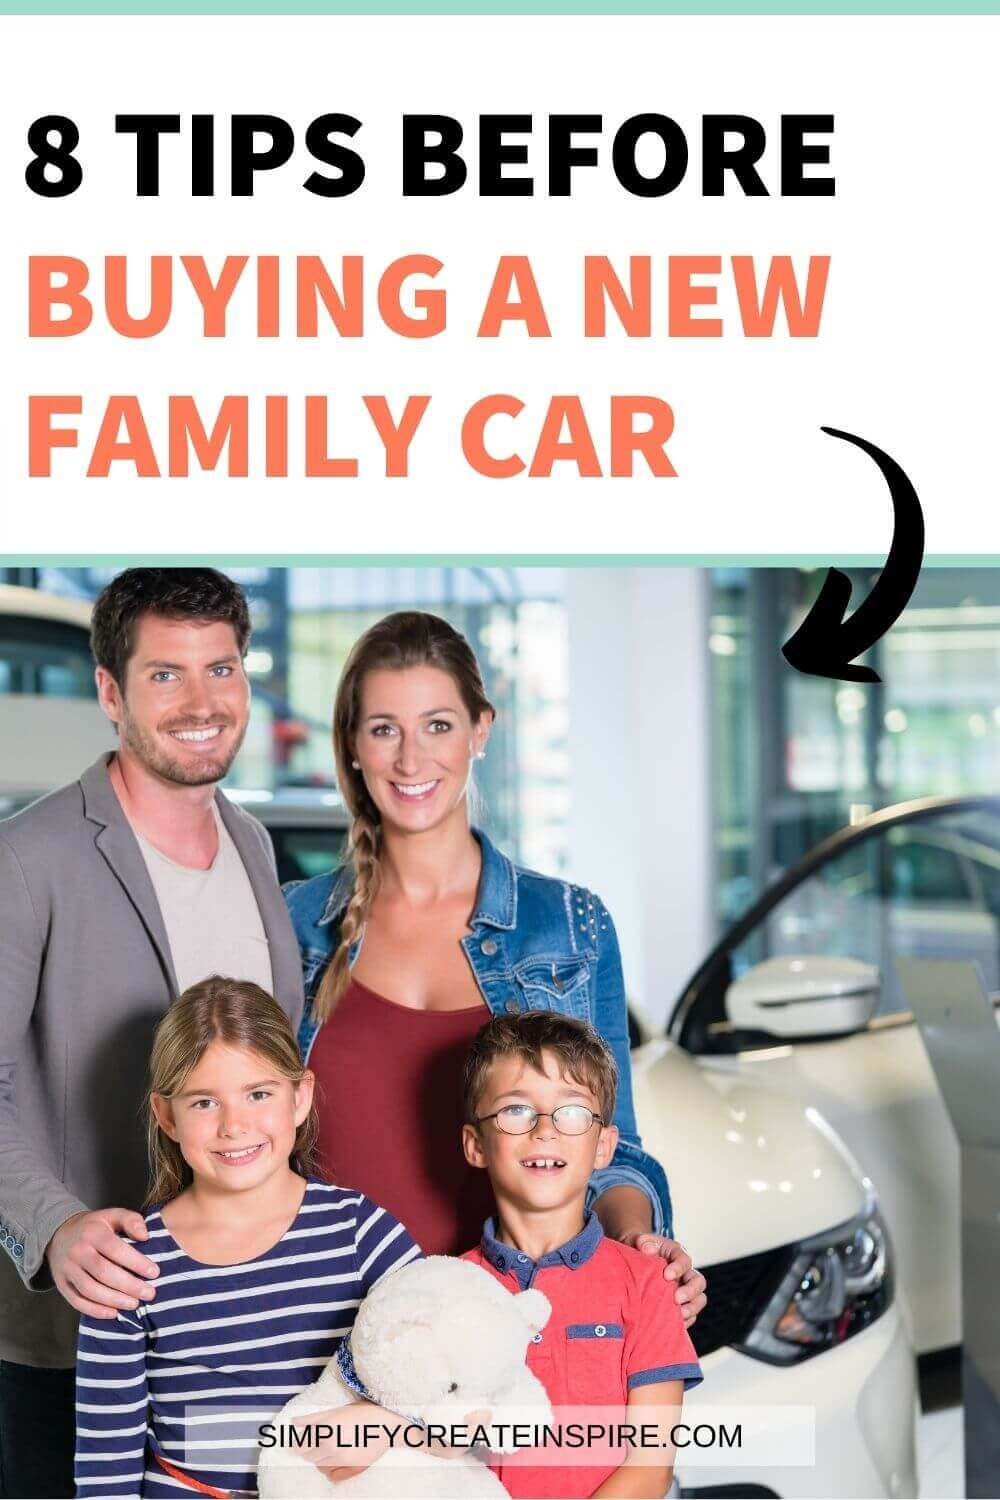 Tips for buying a new family car